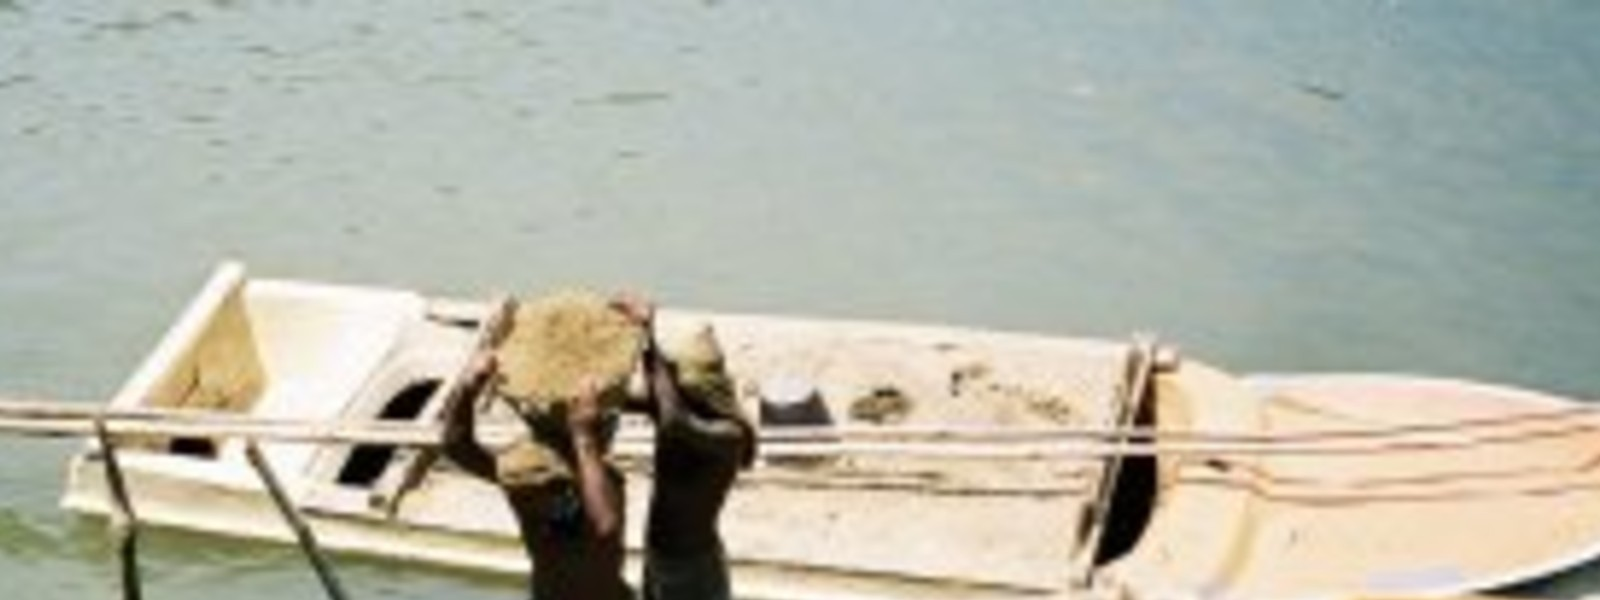 Kalu Ganga sand mining permits to be re-issued, temporarily